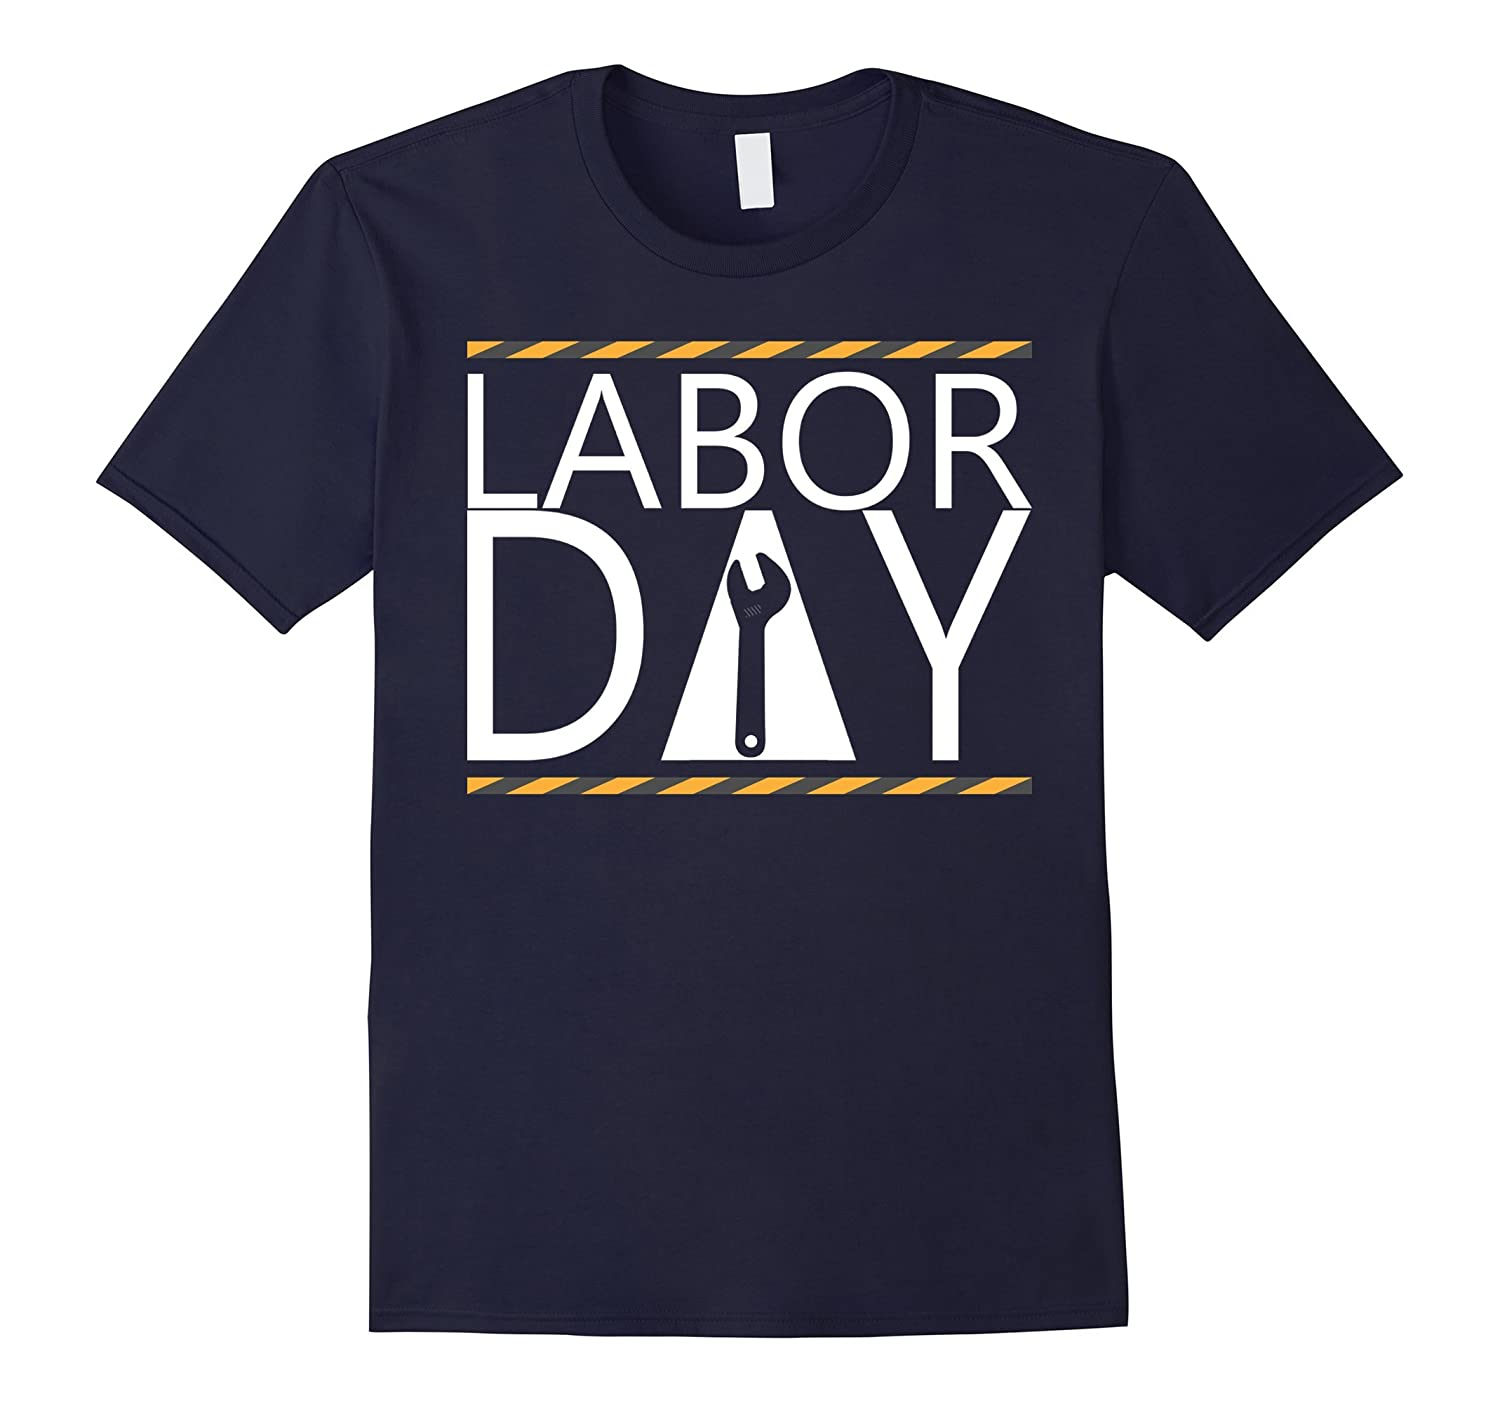 Happy Labor Day T-Shirt - Labor Day 2017 Funny T-Shirt-BN